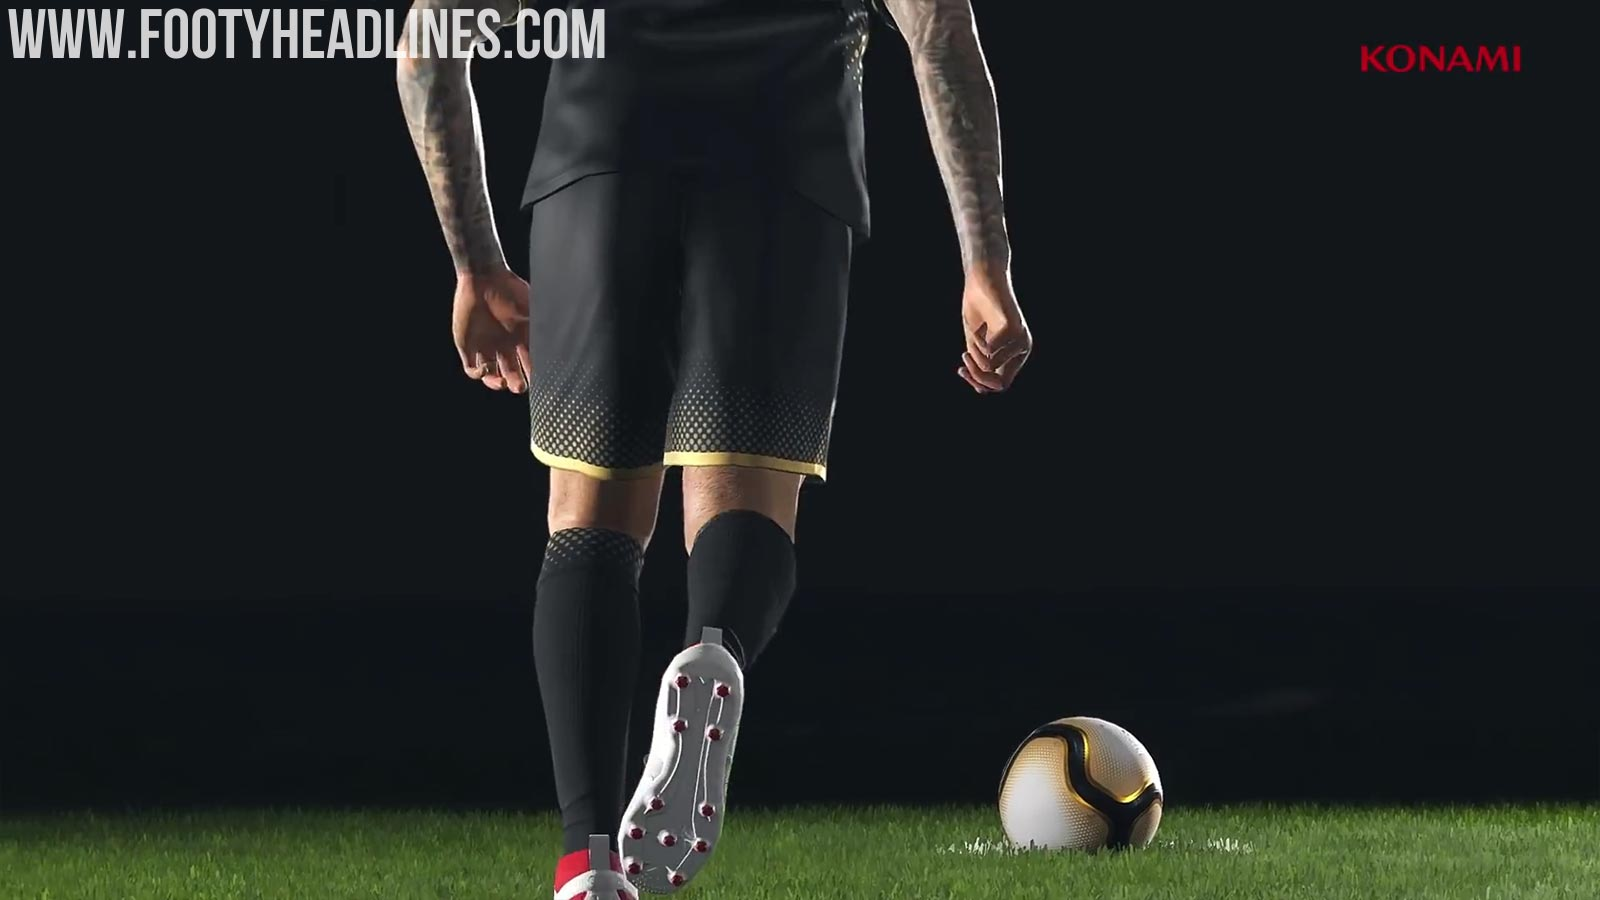 Konami Confirms Leaked Beckham Boots Exclusive To Pes 2019